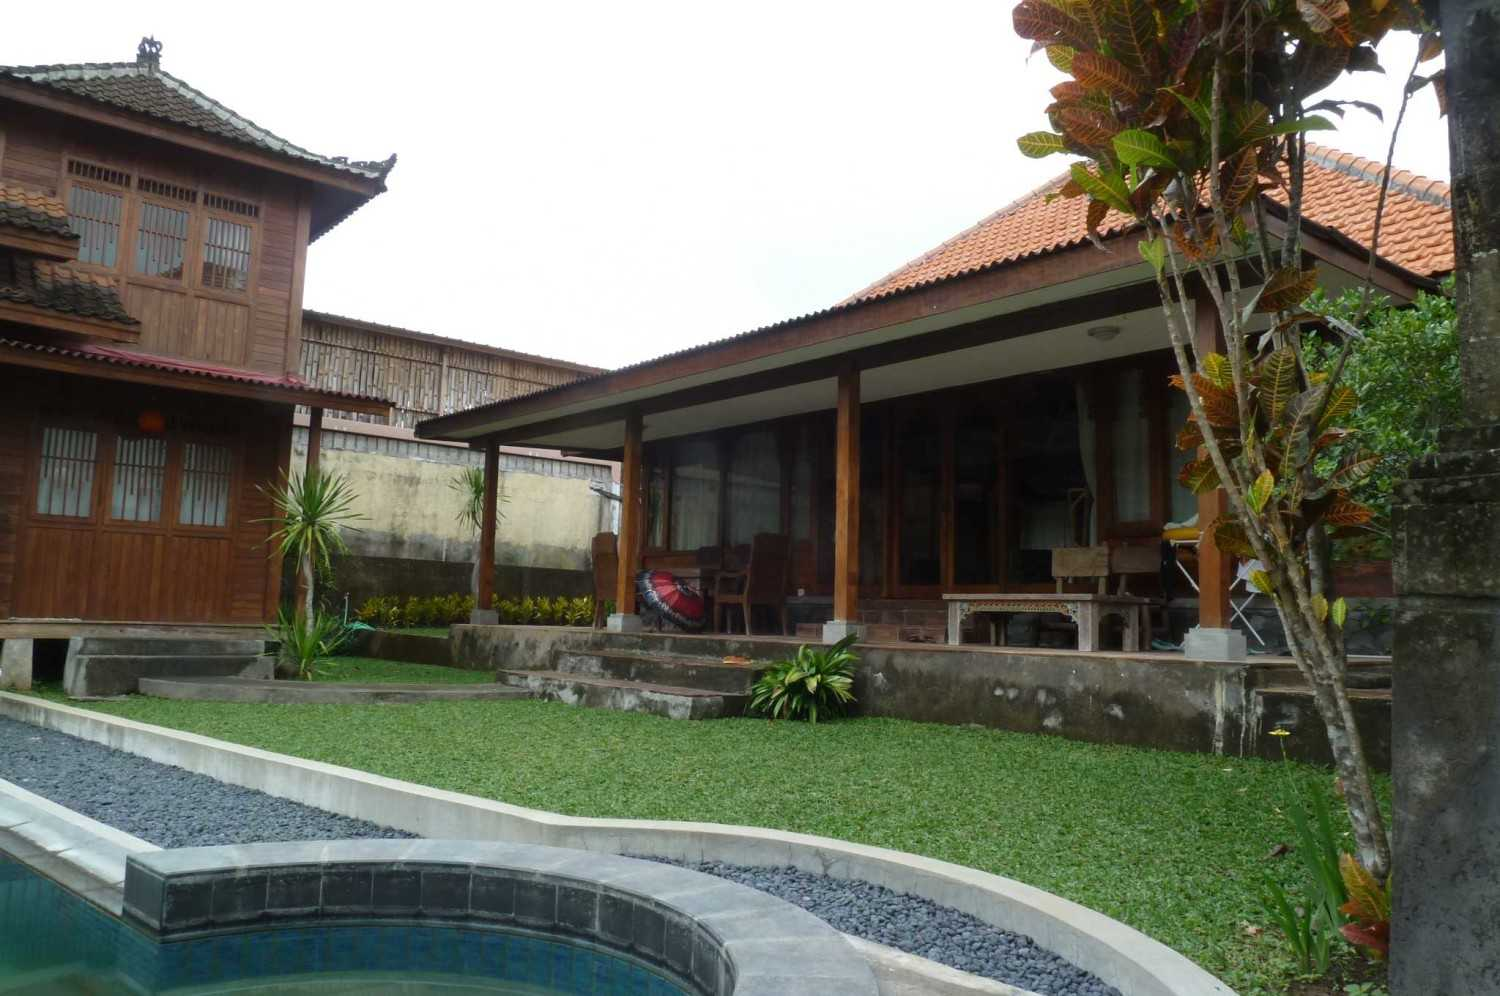 Jasa Design and Build Dedy di Bali